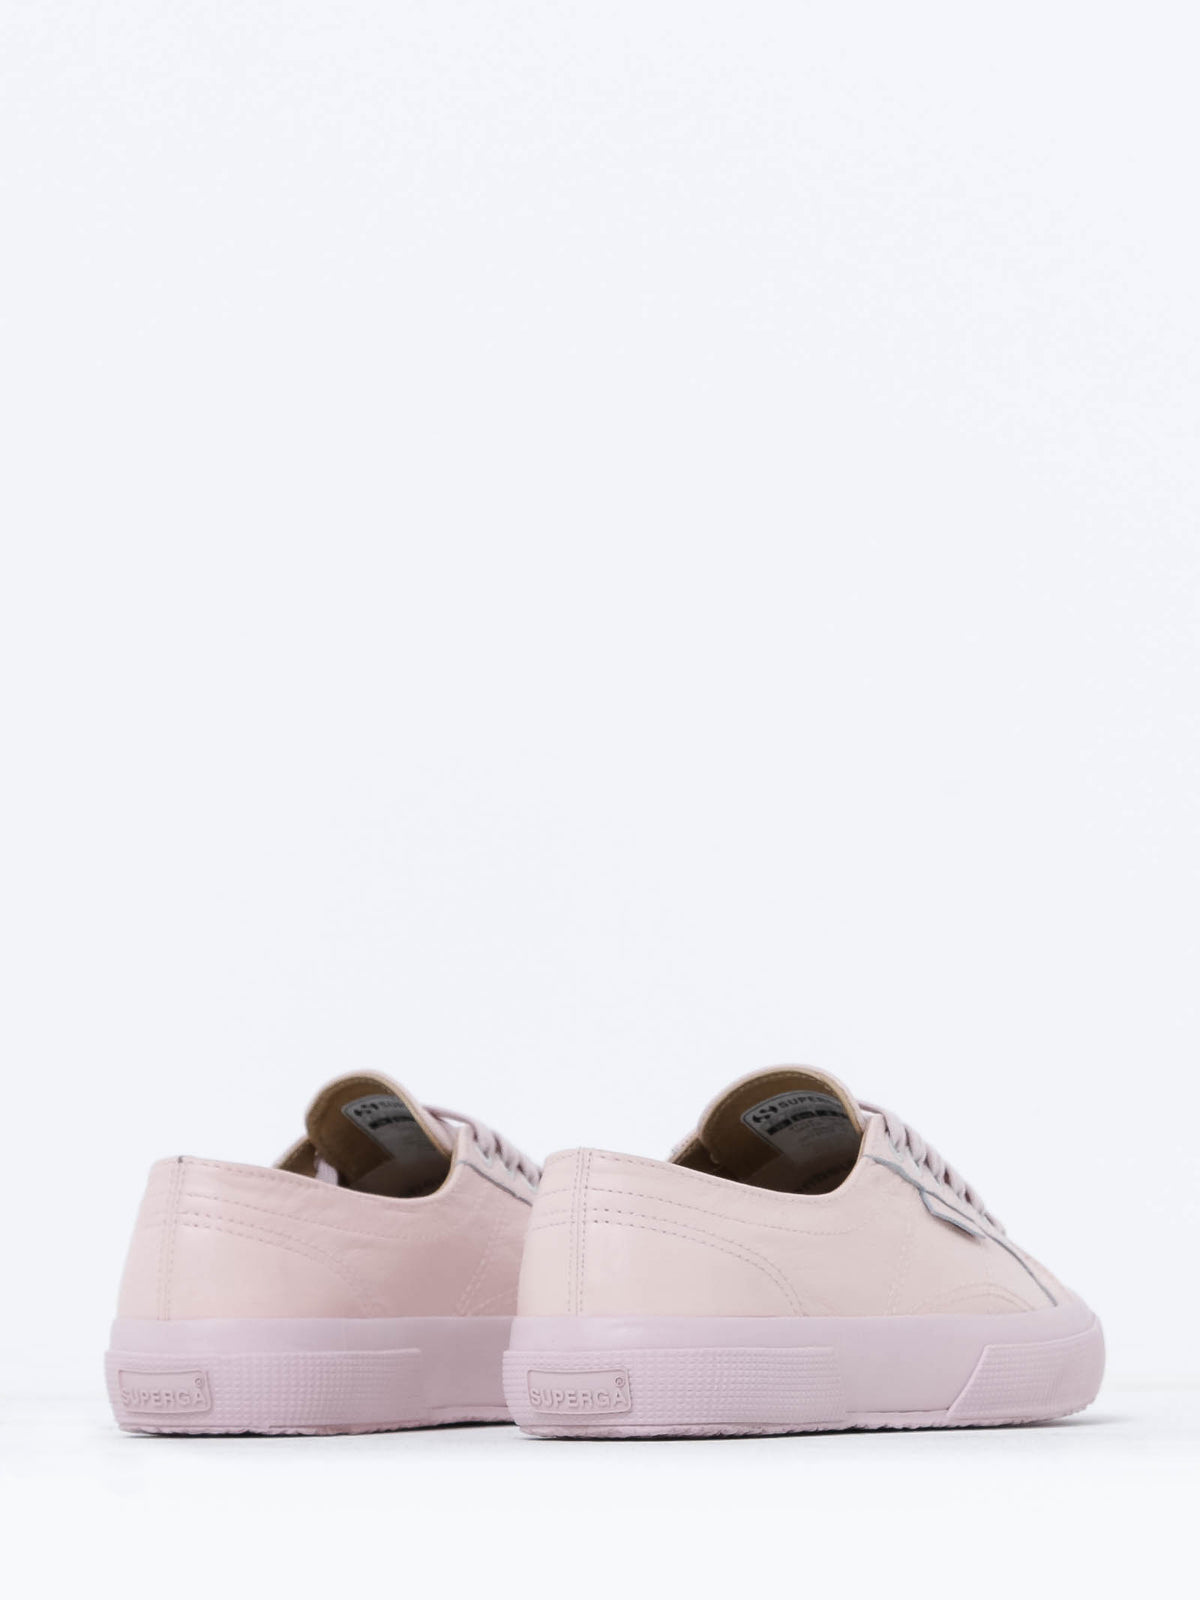 Womens 2750 Sneakers in Pink Leather